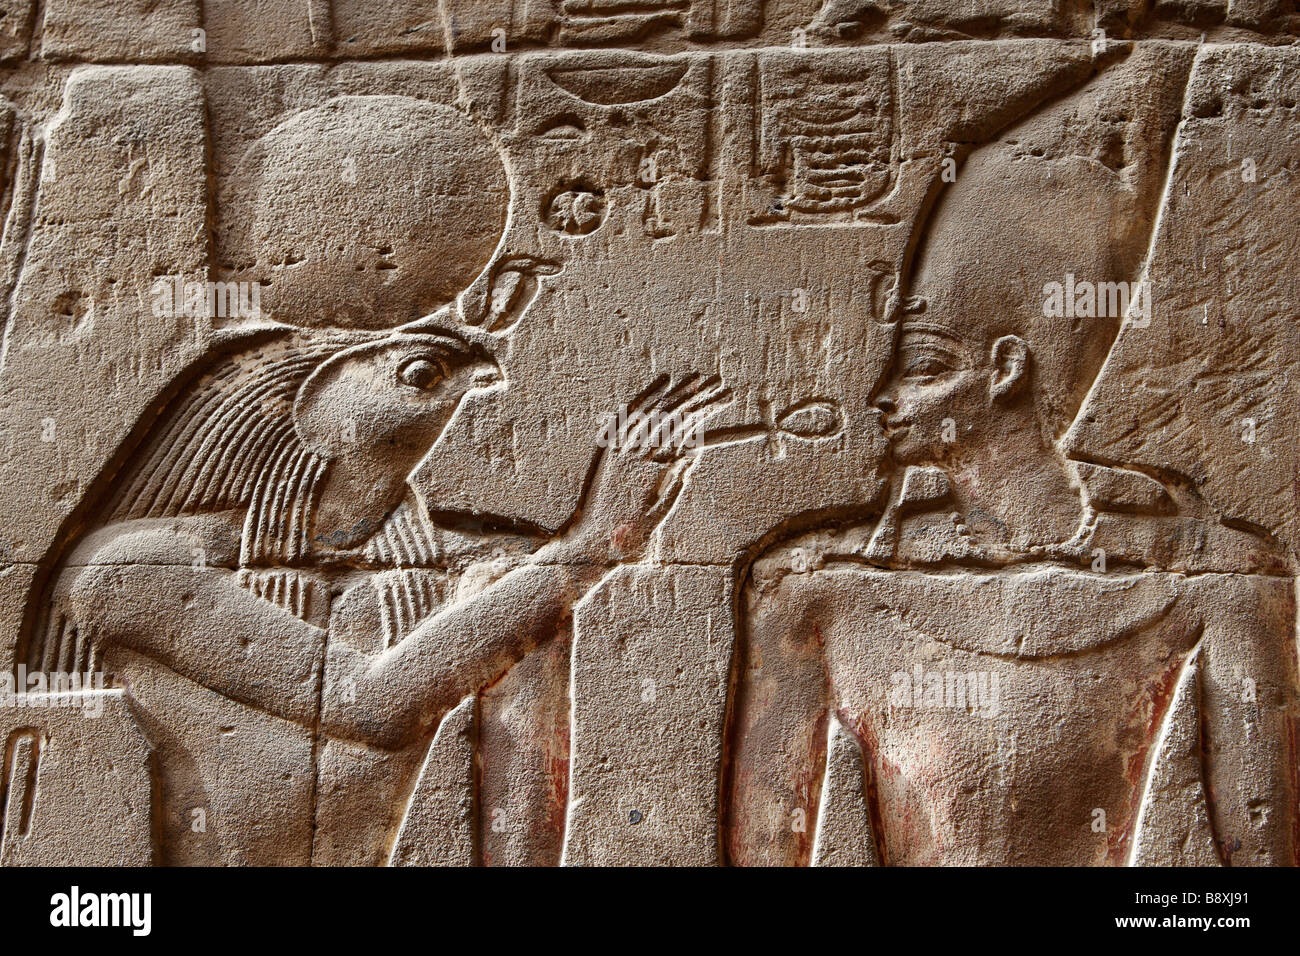 Wall relief showing egyptian god montu holding ankh to the